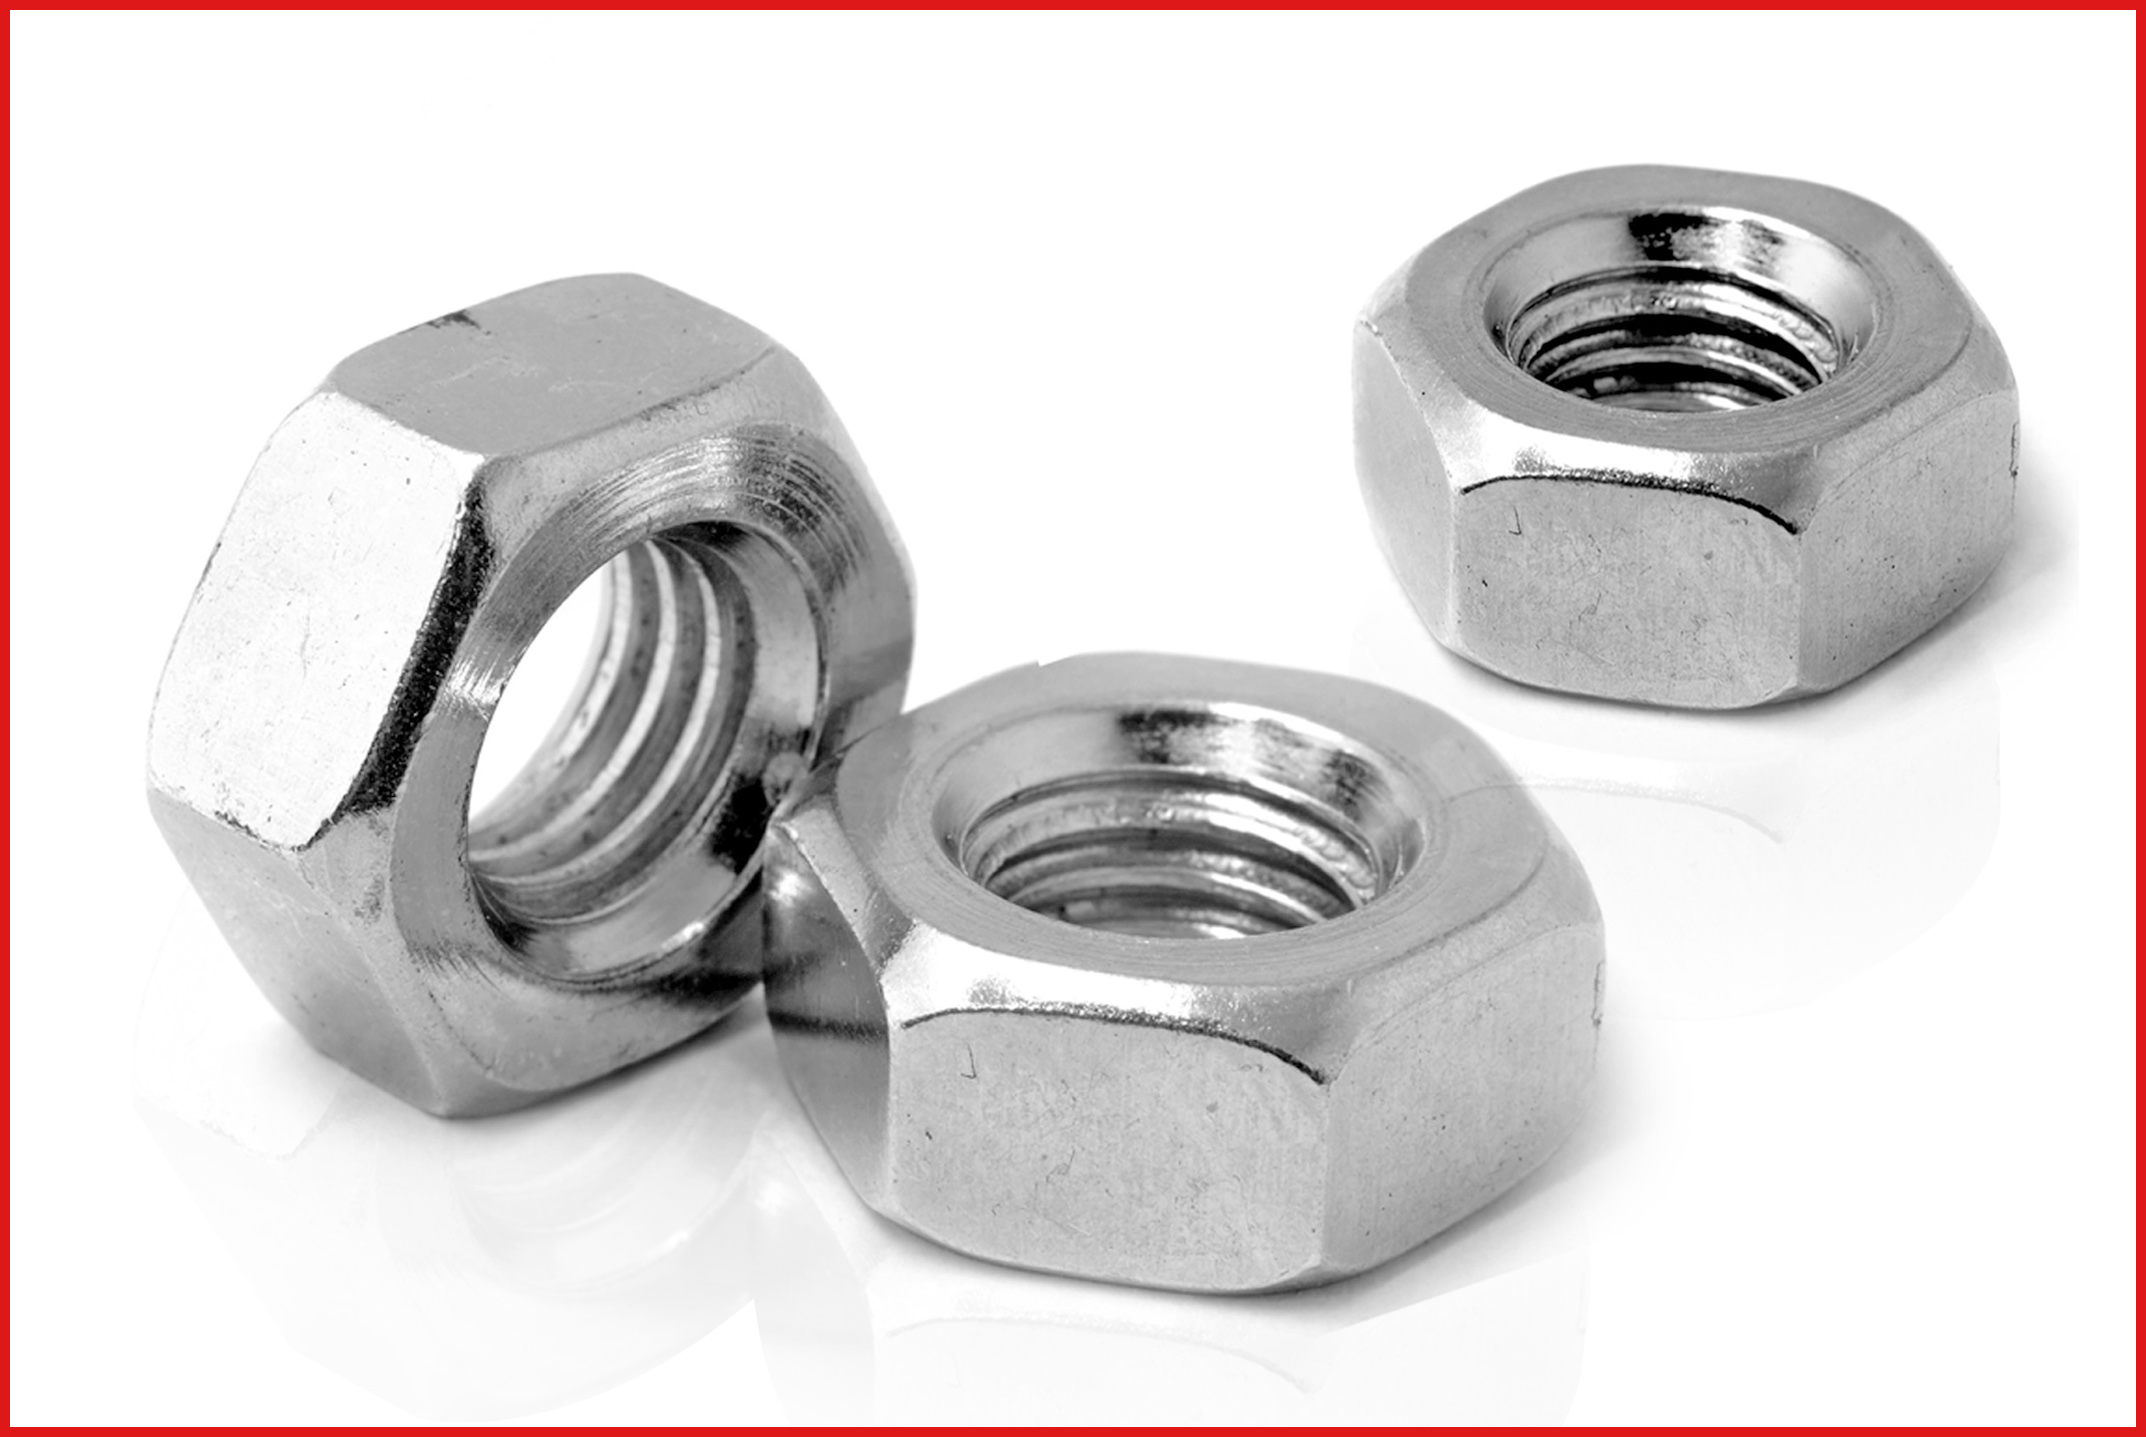 Stainless steel hex nuts nut bolt screw manufacturers